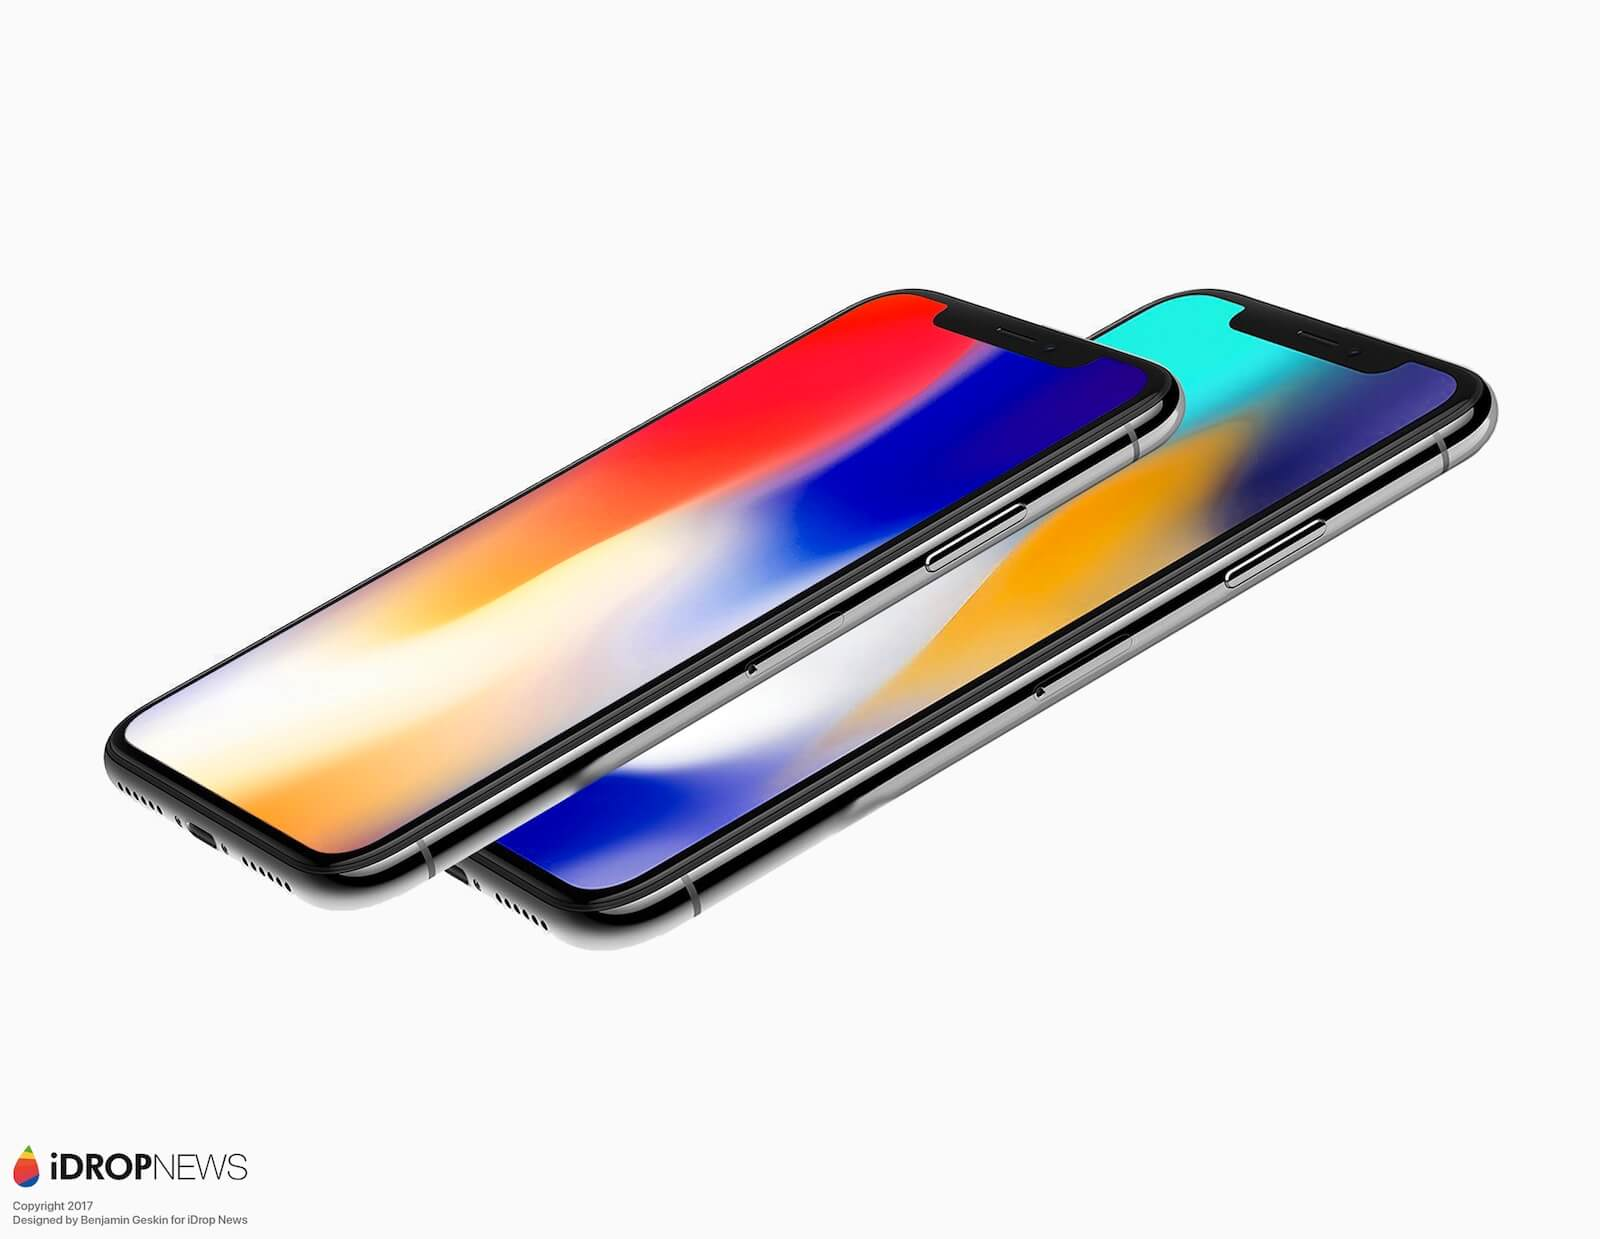 iPhone X / iDrop News